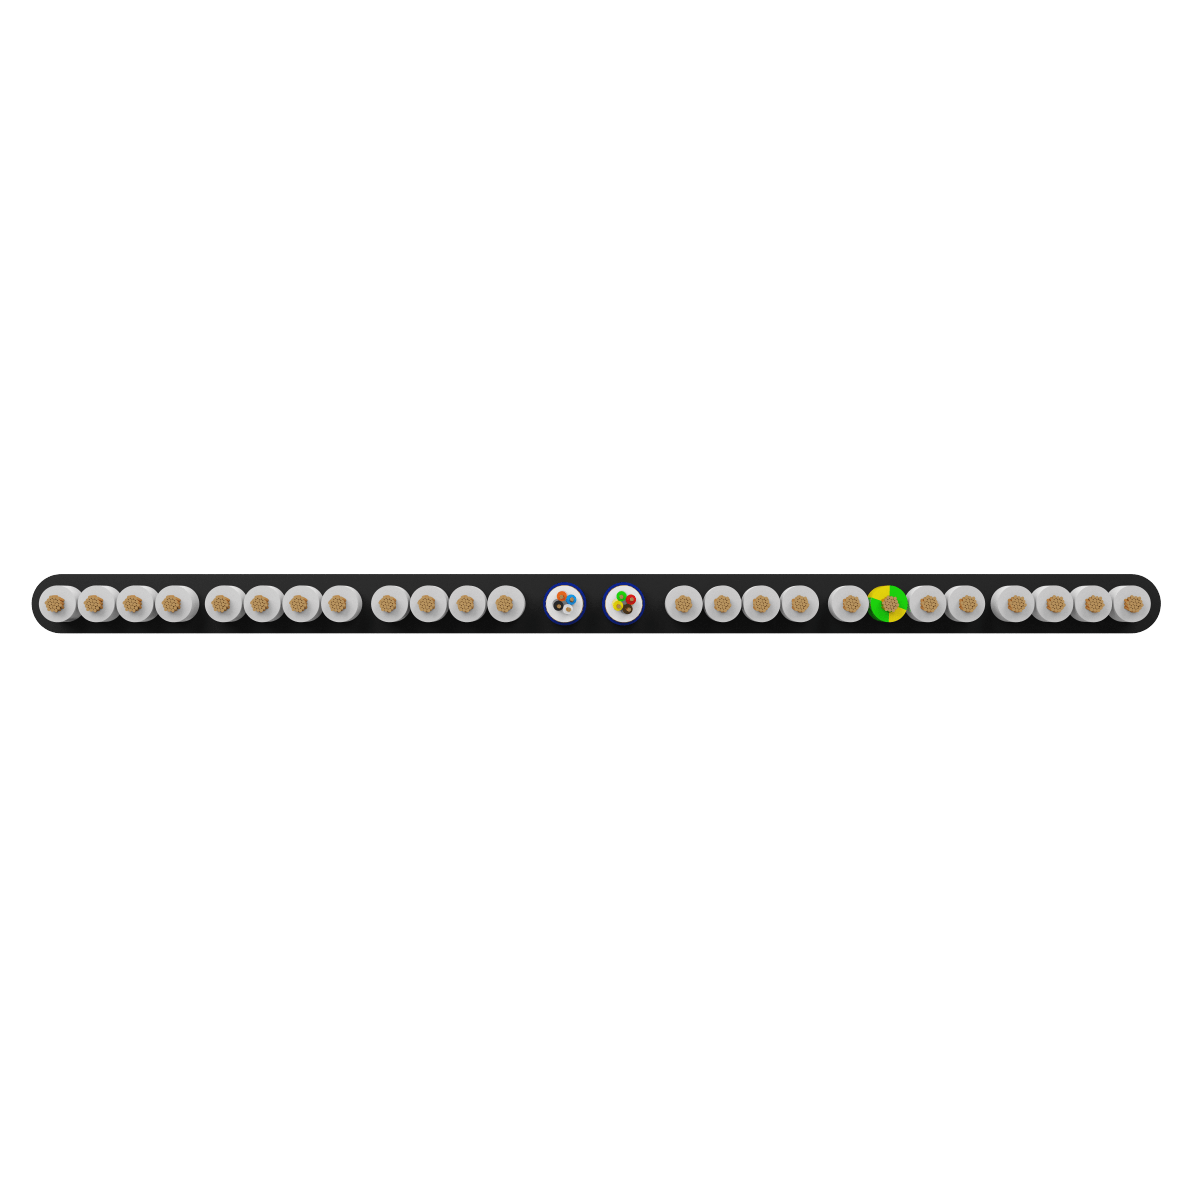 24x0.75 +2Px(4x0.22) mm² H05VVH6-F Foiled Elevator Cable